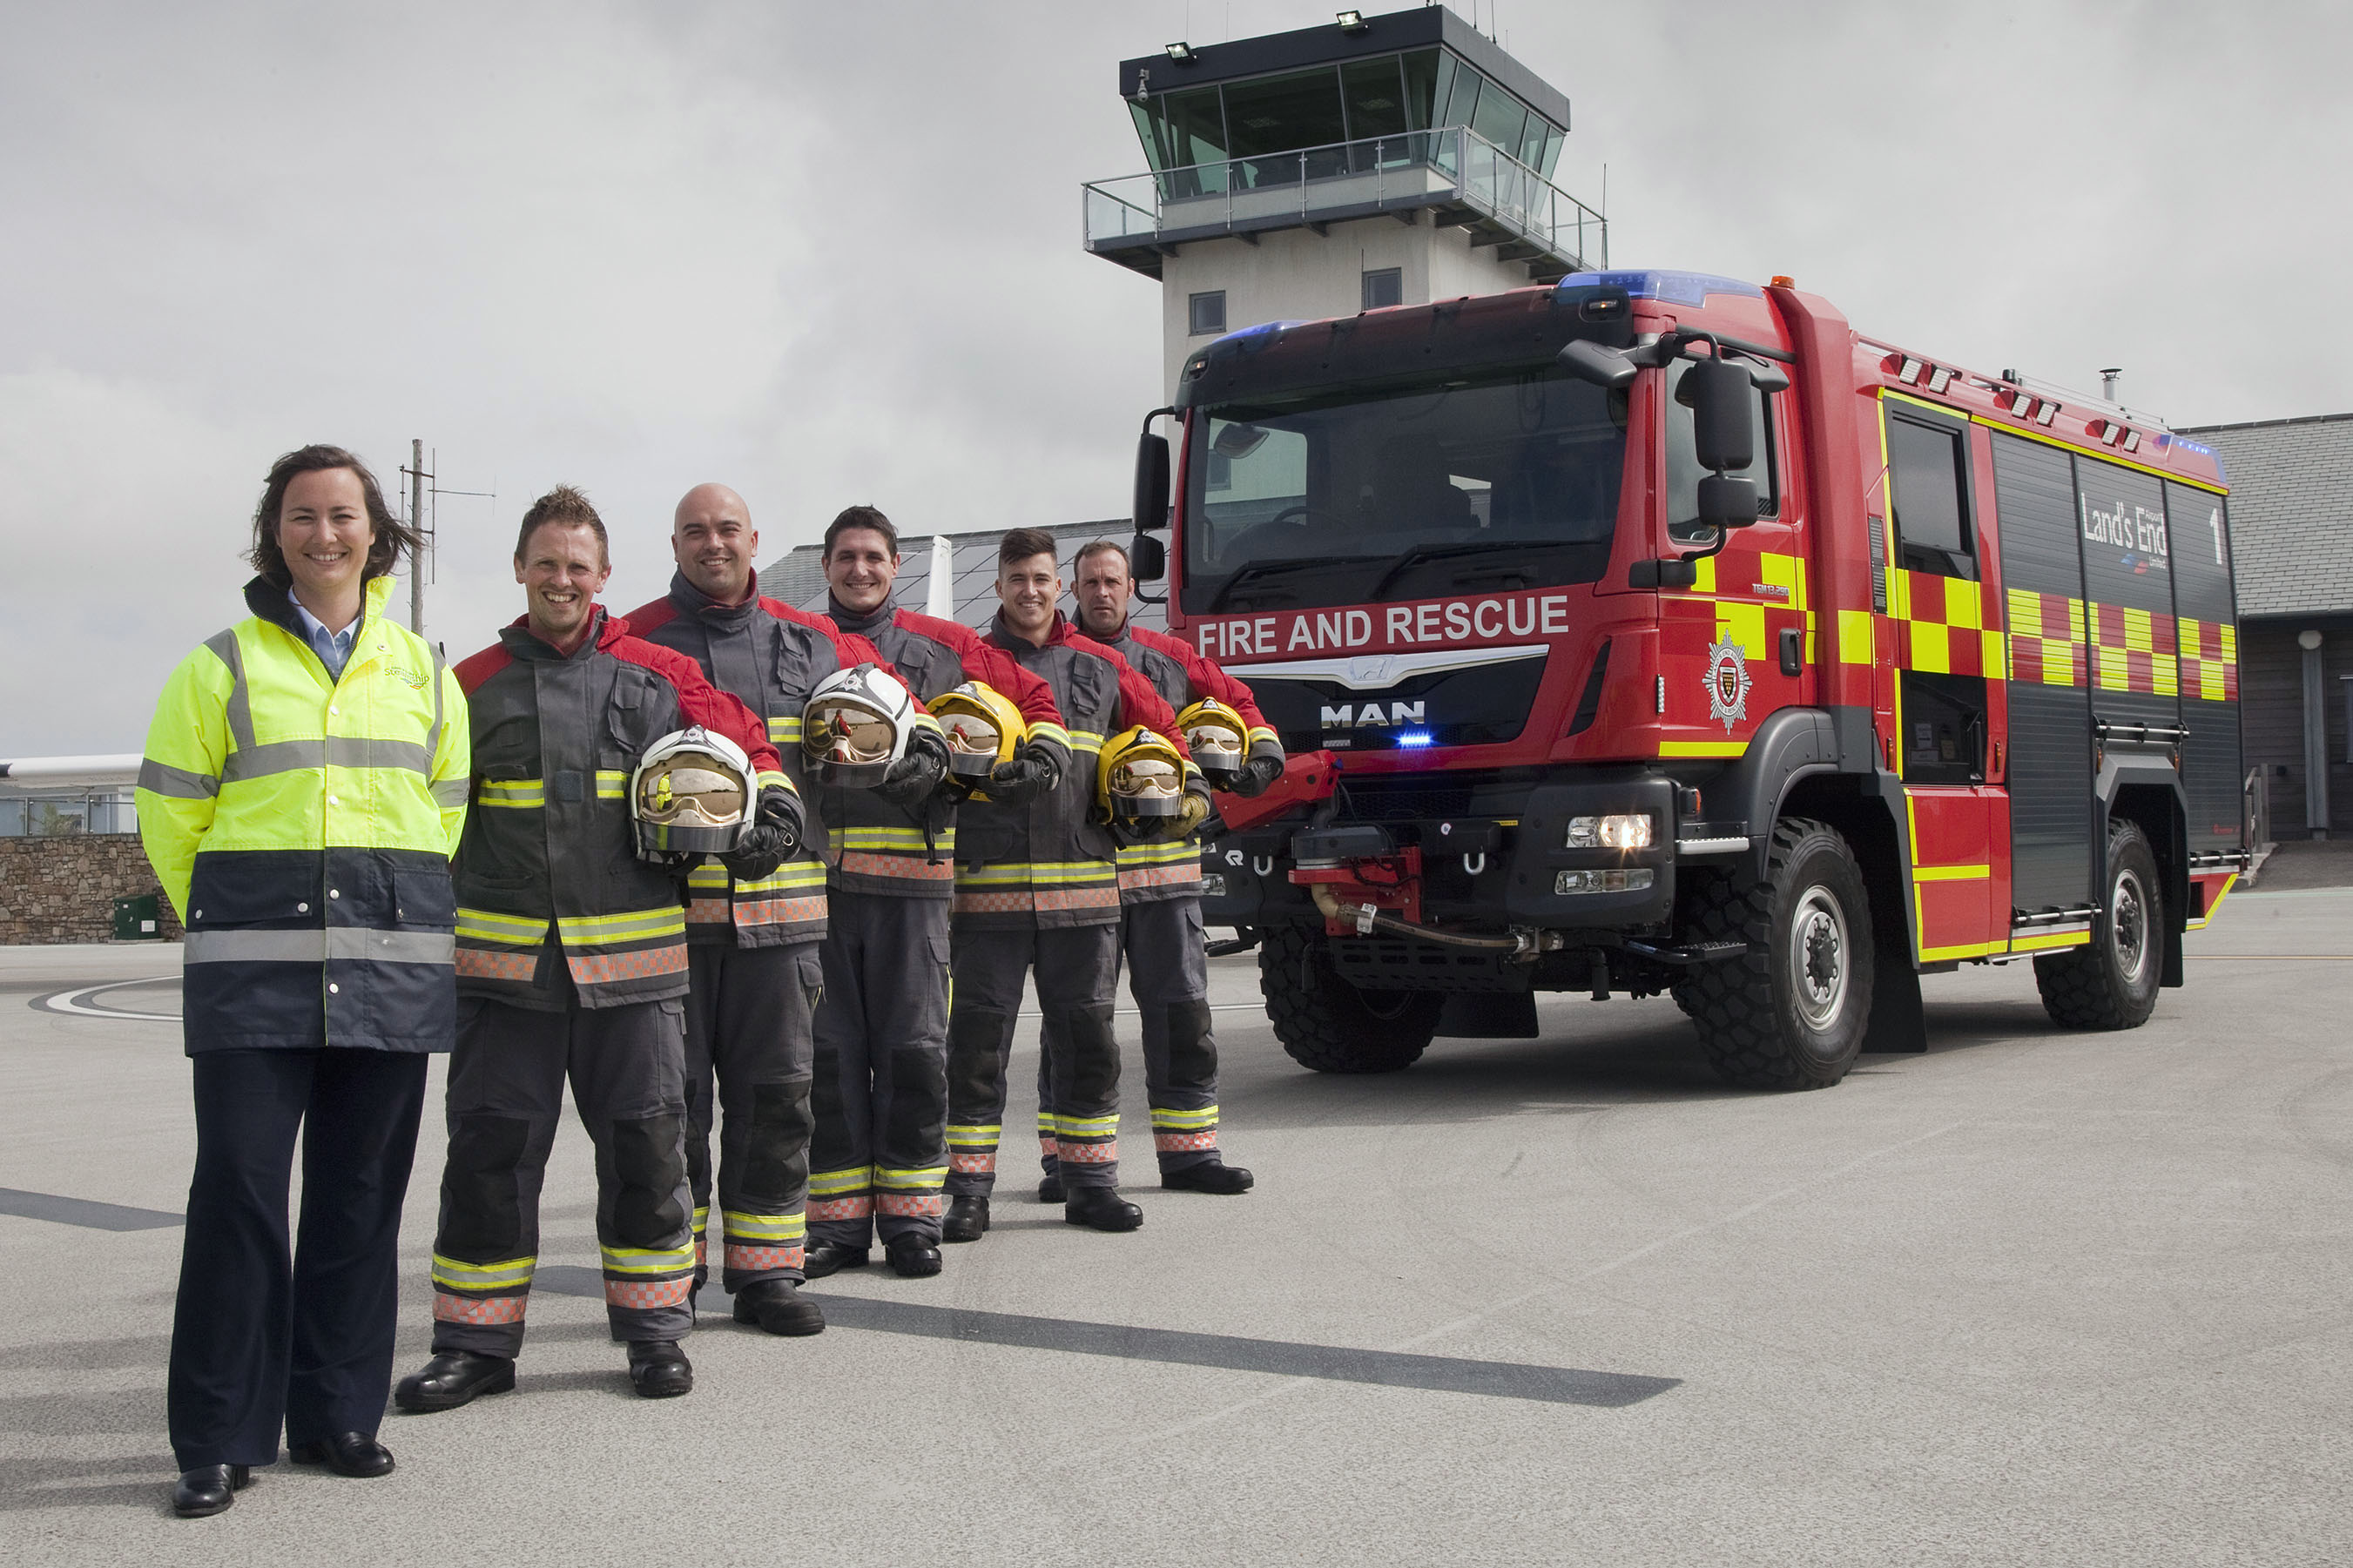 Land's End Airport have a new Rosenbauer AT (Advanced Technology) appliance. L-r Debs Stephens deputy airport manager, Gary Schofield Red Watch manager, Jono Stephens Blue Watch manager, Alex Bonner fire-fighter, Josh Smitham fire-fighter, Jamie Wallis fire-fighter.